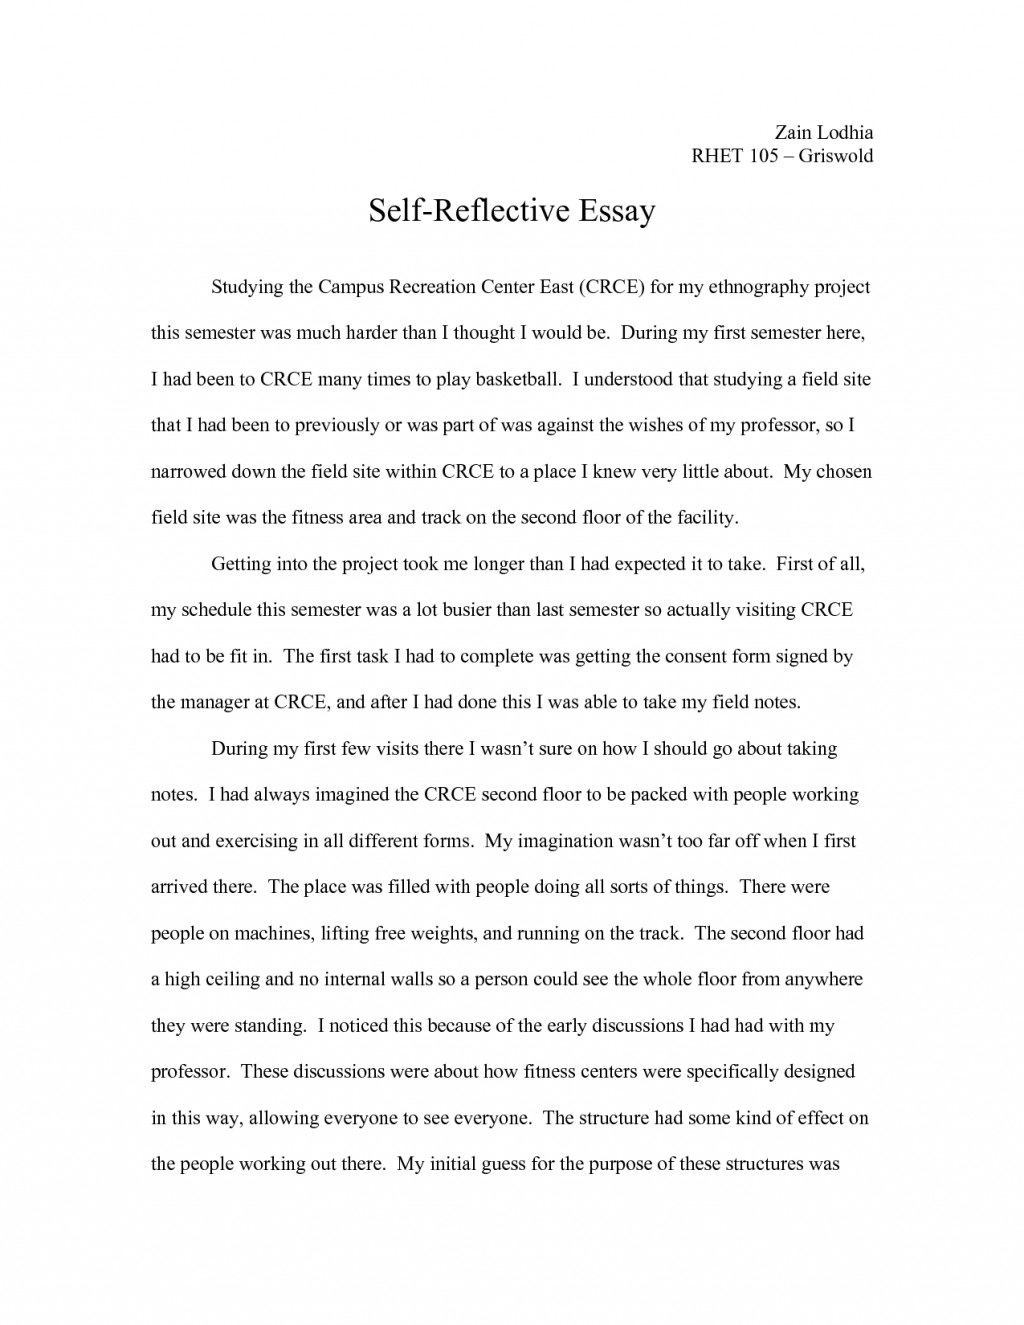 001 Free Sample Essay About Myself Qal0pwnf46 Fascinating Yourself Large